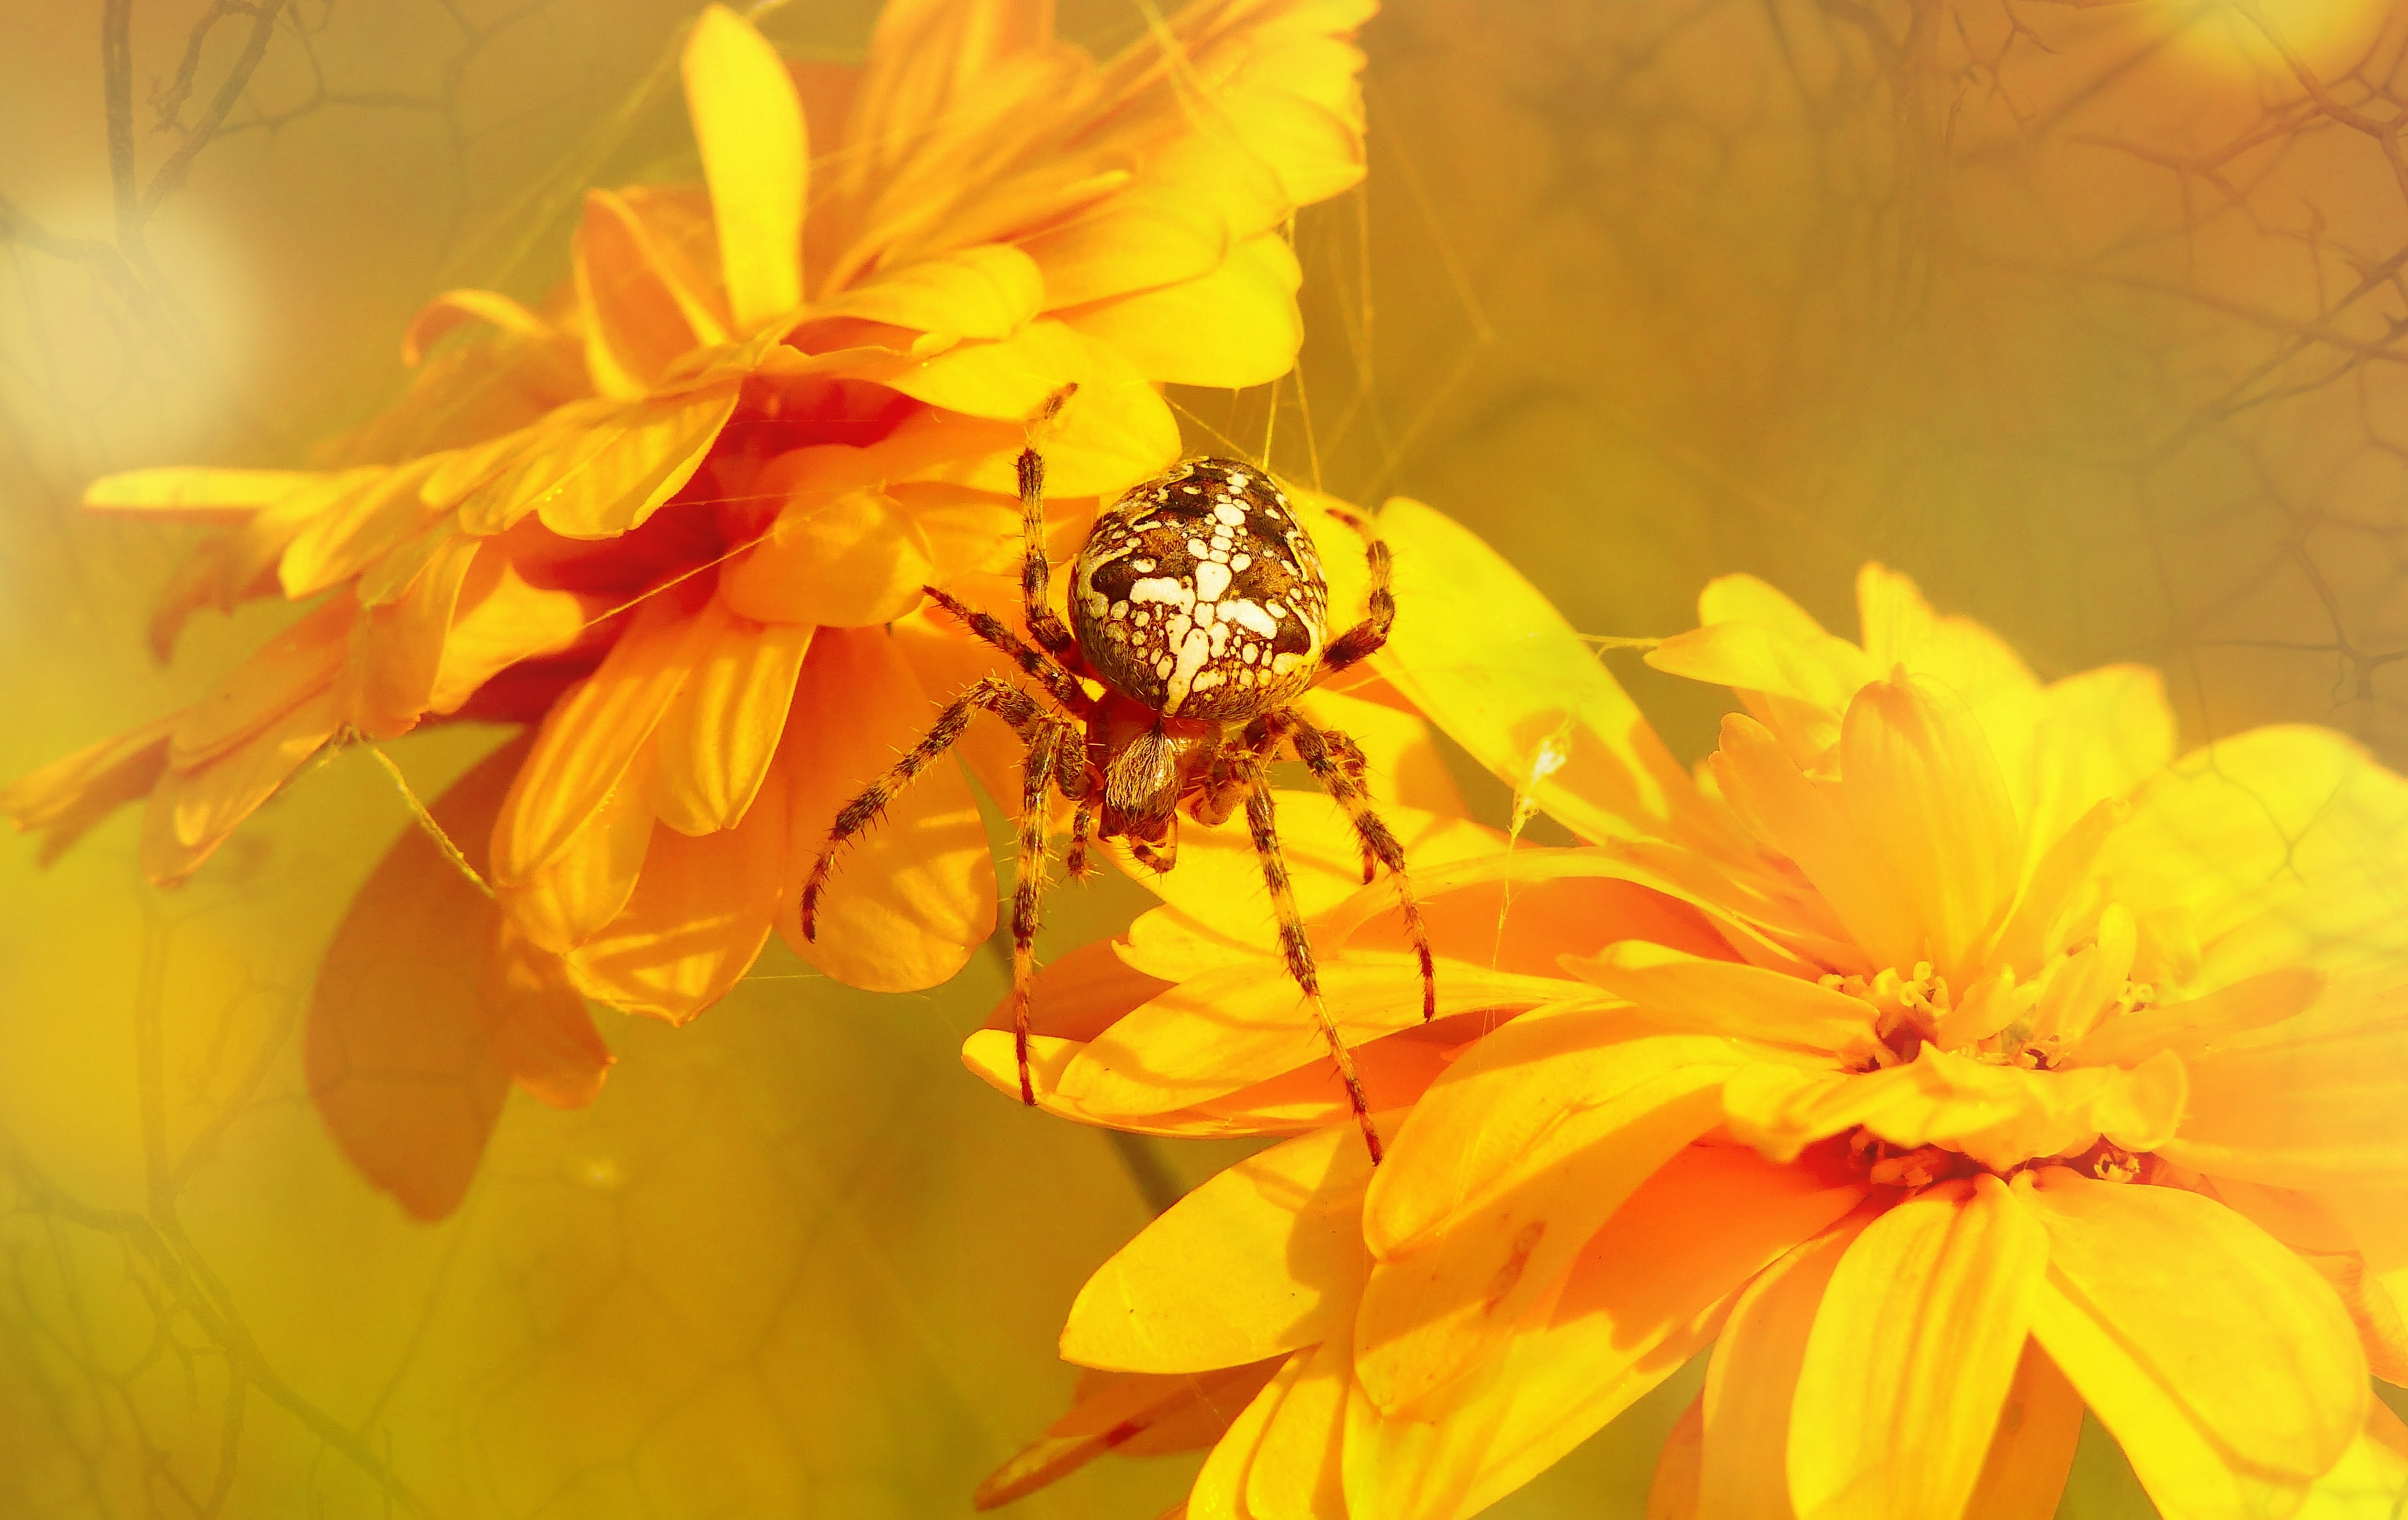 close up photo of brown barn spider near yellow flowers